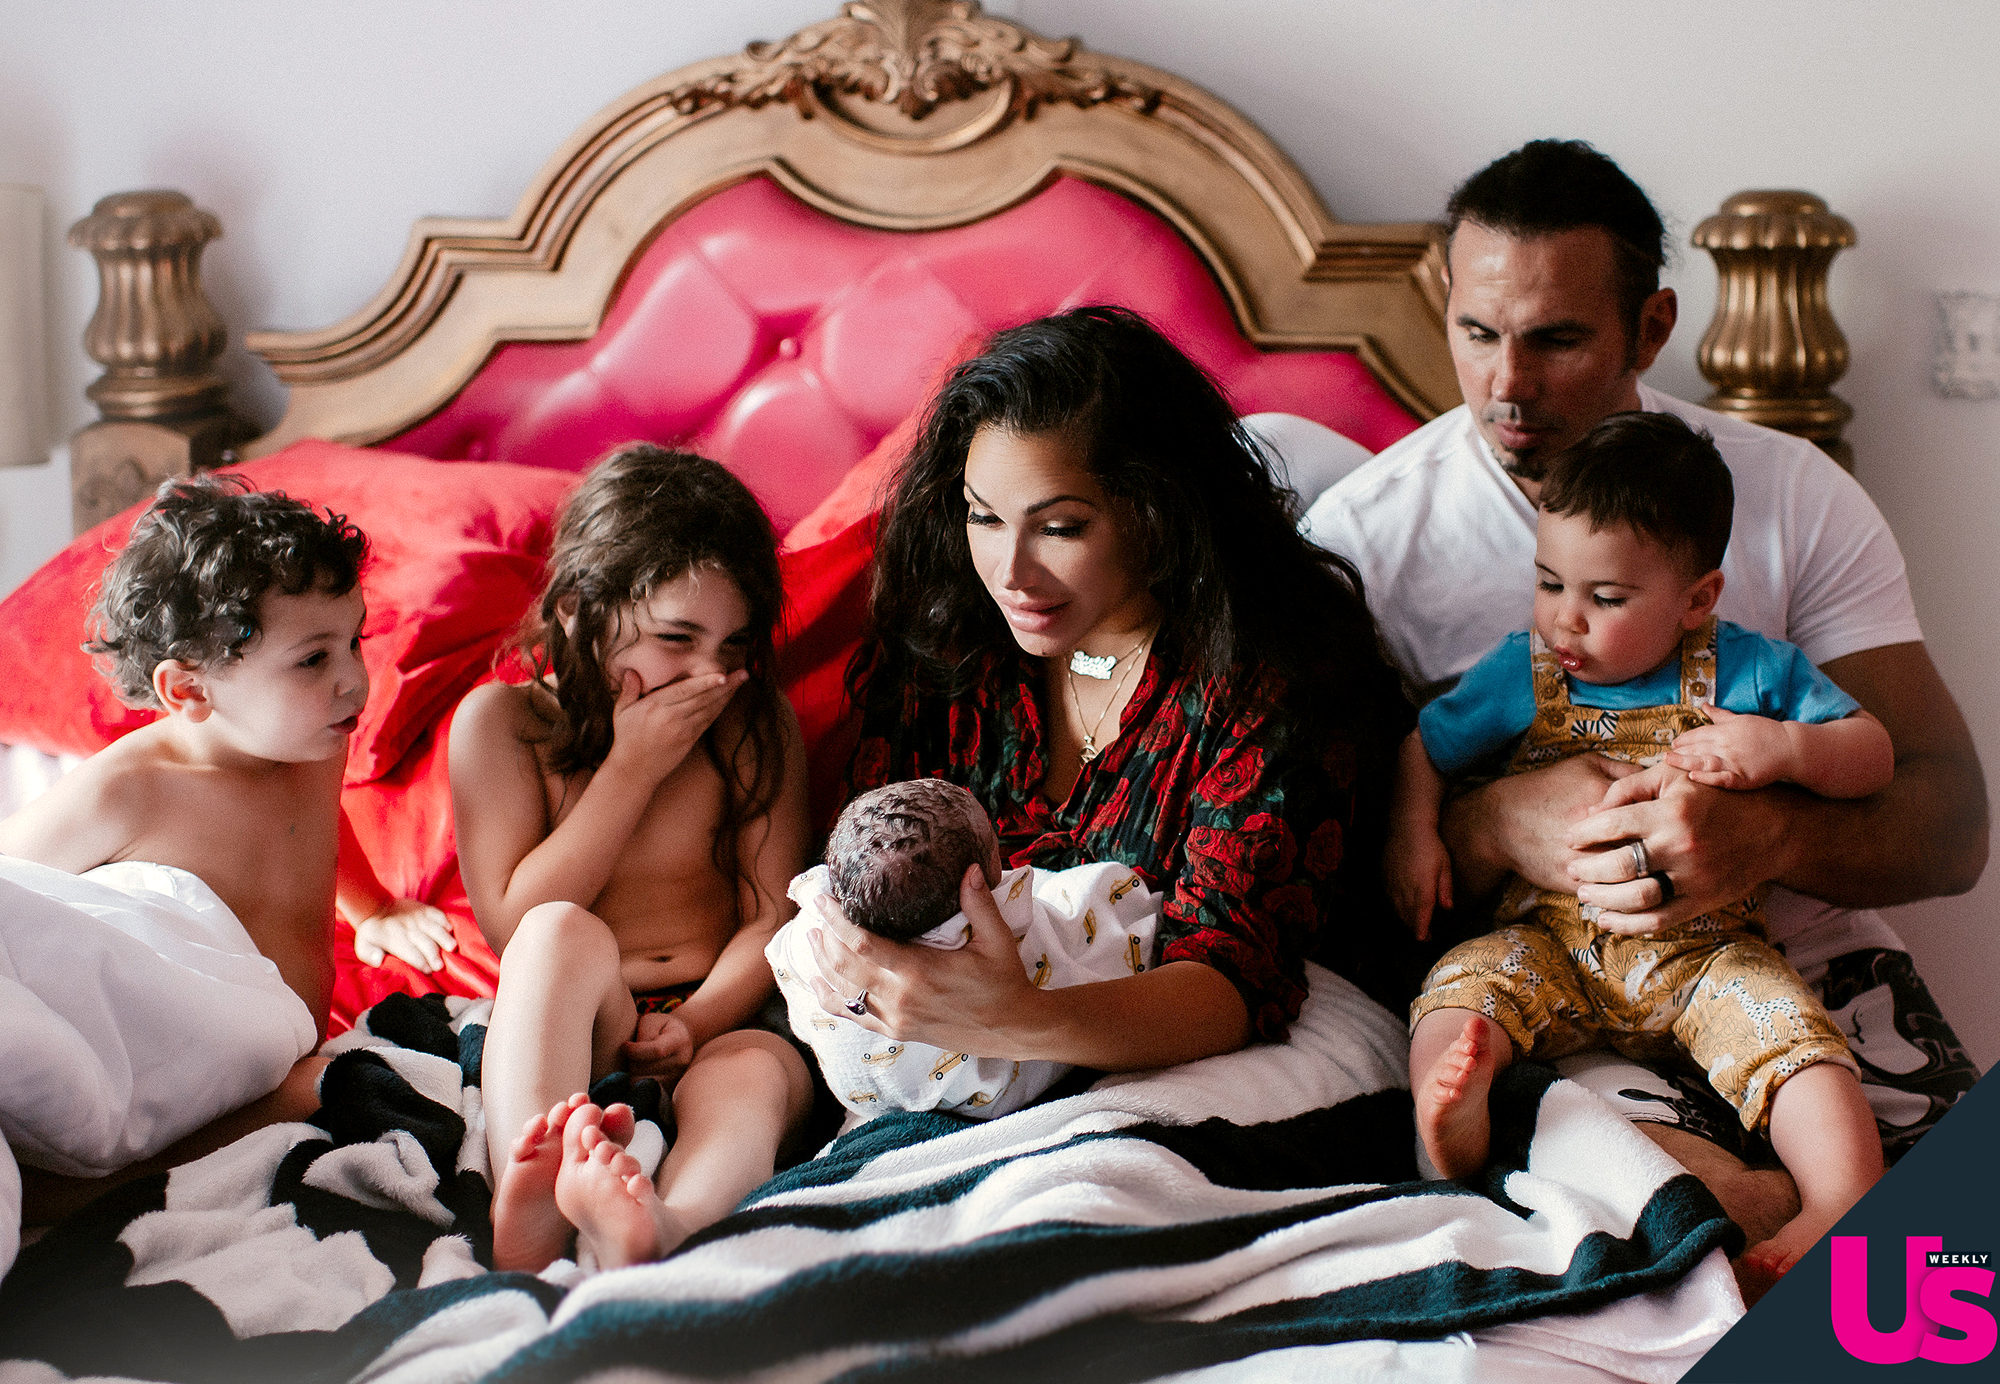 Matt and Reby Hardy welcome fourth child to the world